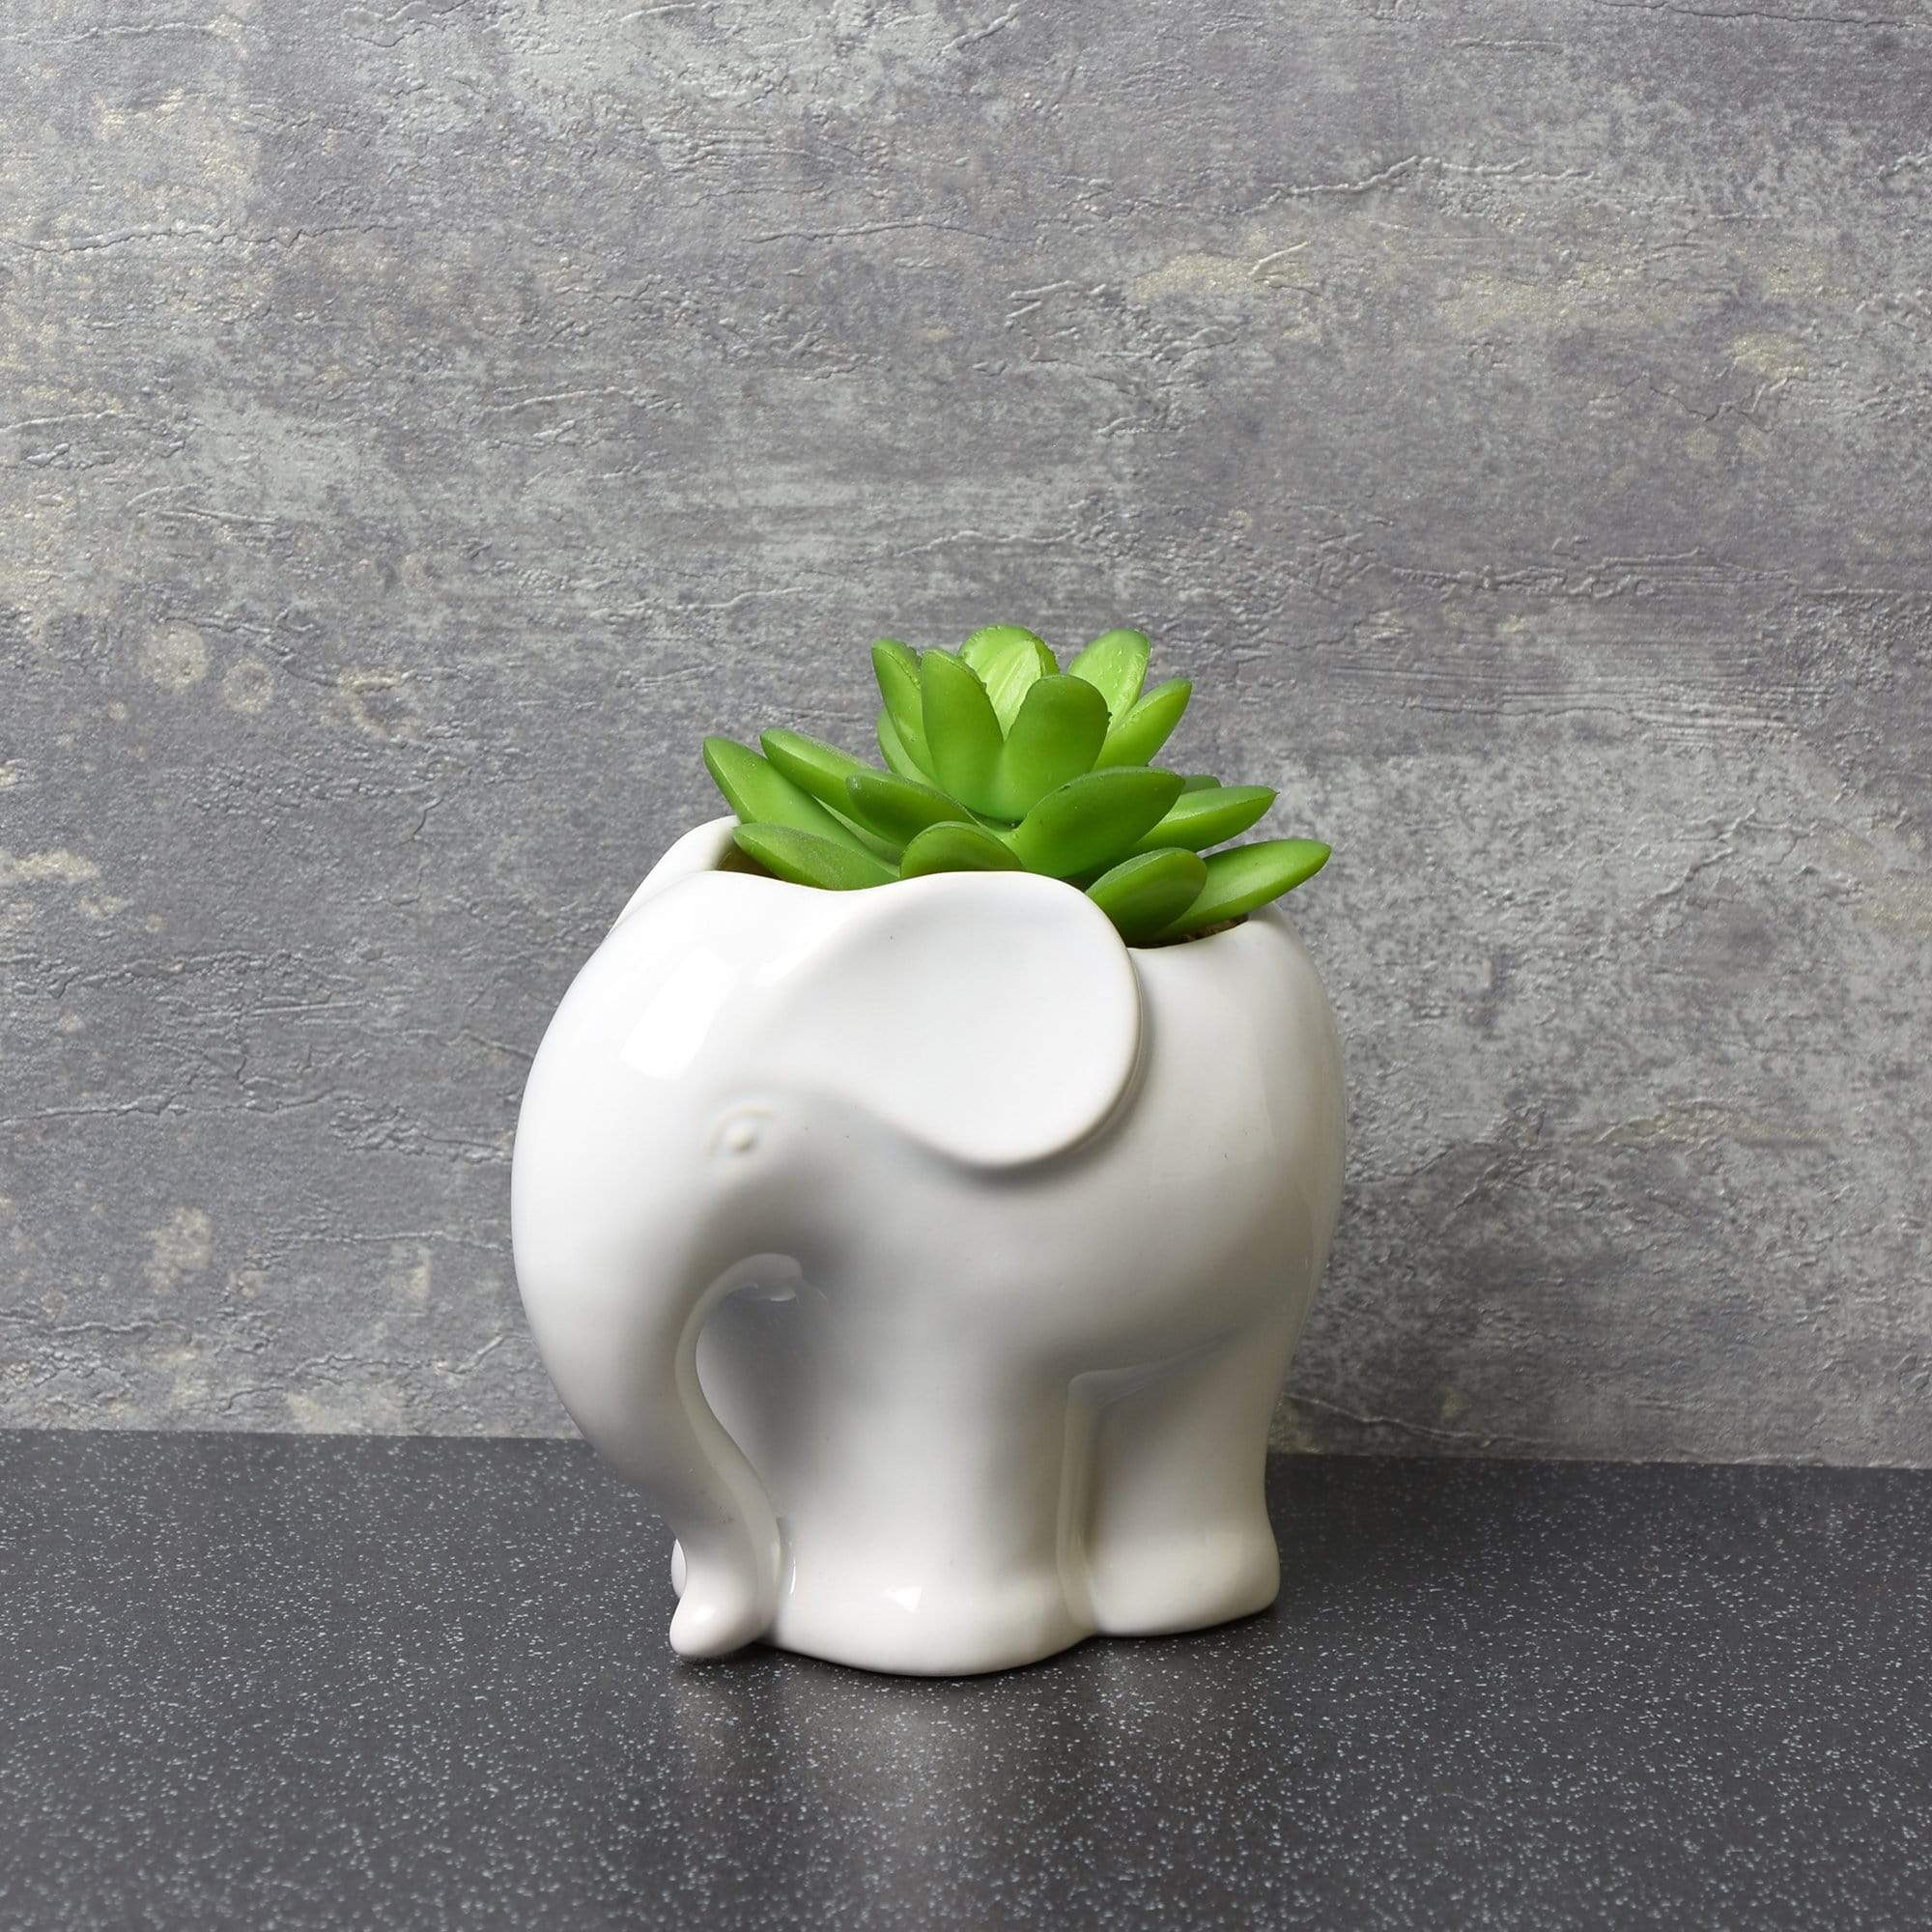 Candlelight Home Artificial Plants & Flowers Plastic Succulent Plant In Ceramic Elephant Pot White 12.5cm 6PK